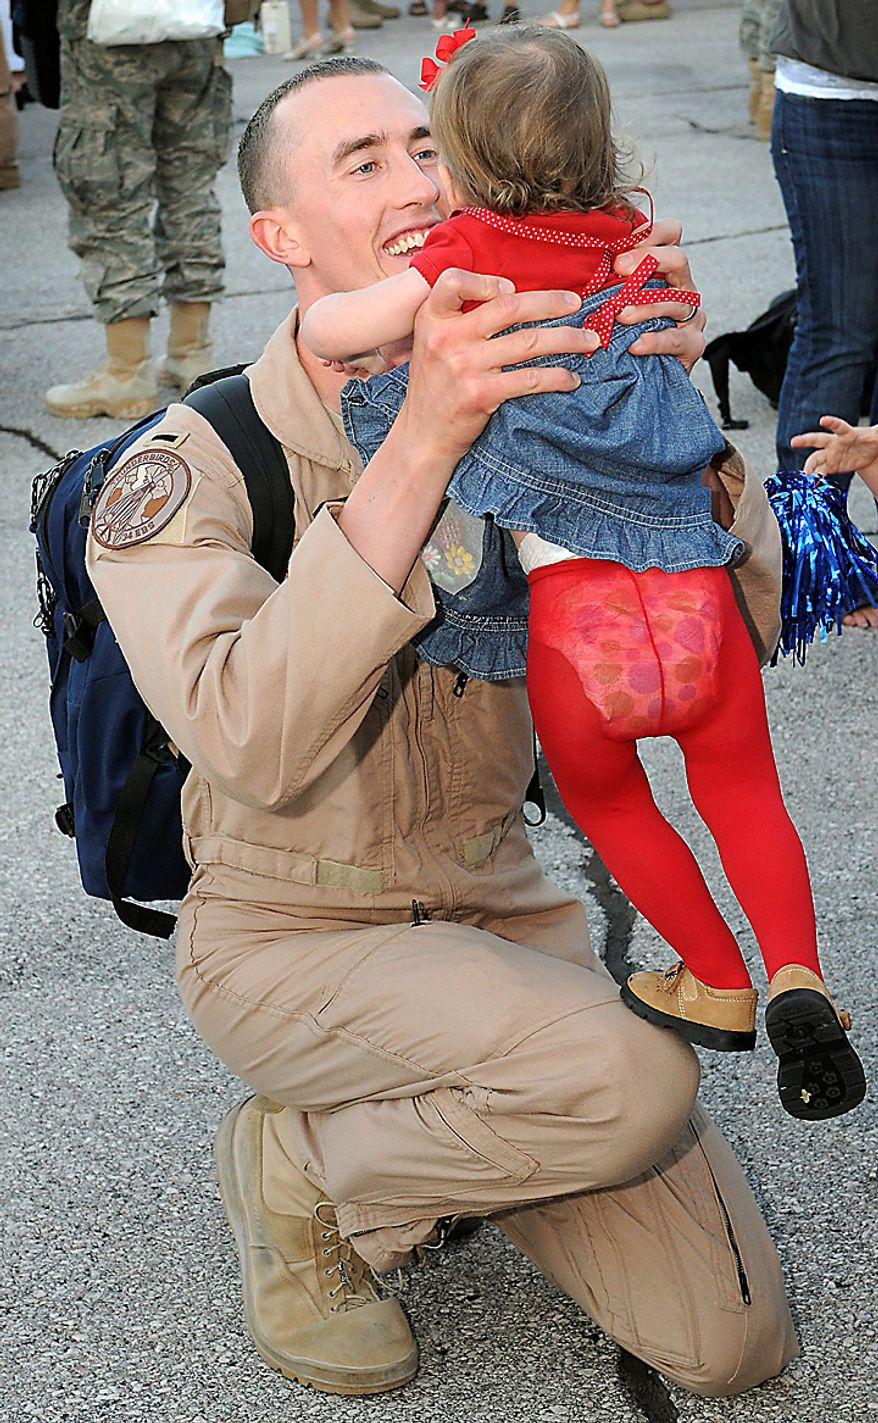 In this Wednesday, July 28, 2010 file picture, Lt. Matt Fryer smiles as he lifts his one-and-a-half-year-old daughter Clarity on the tarmac at Ellsworth Air Force Base, S.D. Lt. Fryer was among 350 airmen returning home to the South Dakota airbase after being deployed in Southeast Asia for six months in support of the 28th Bomb Wing whose B-1 bombers supply long-range and close air support to the troops in Iraq and Afghanistan. (AP Photo/Steve McEnroe, File)